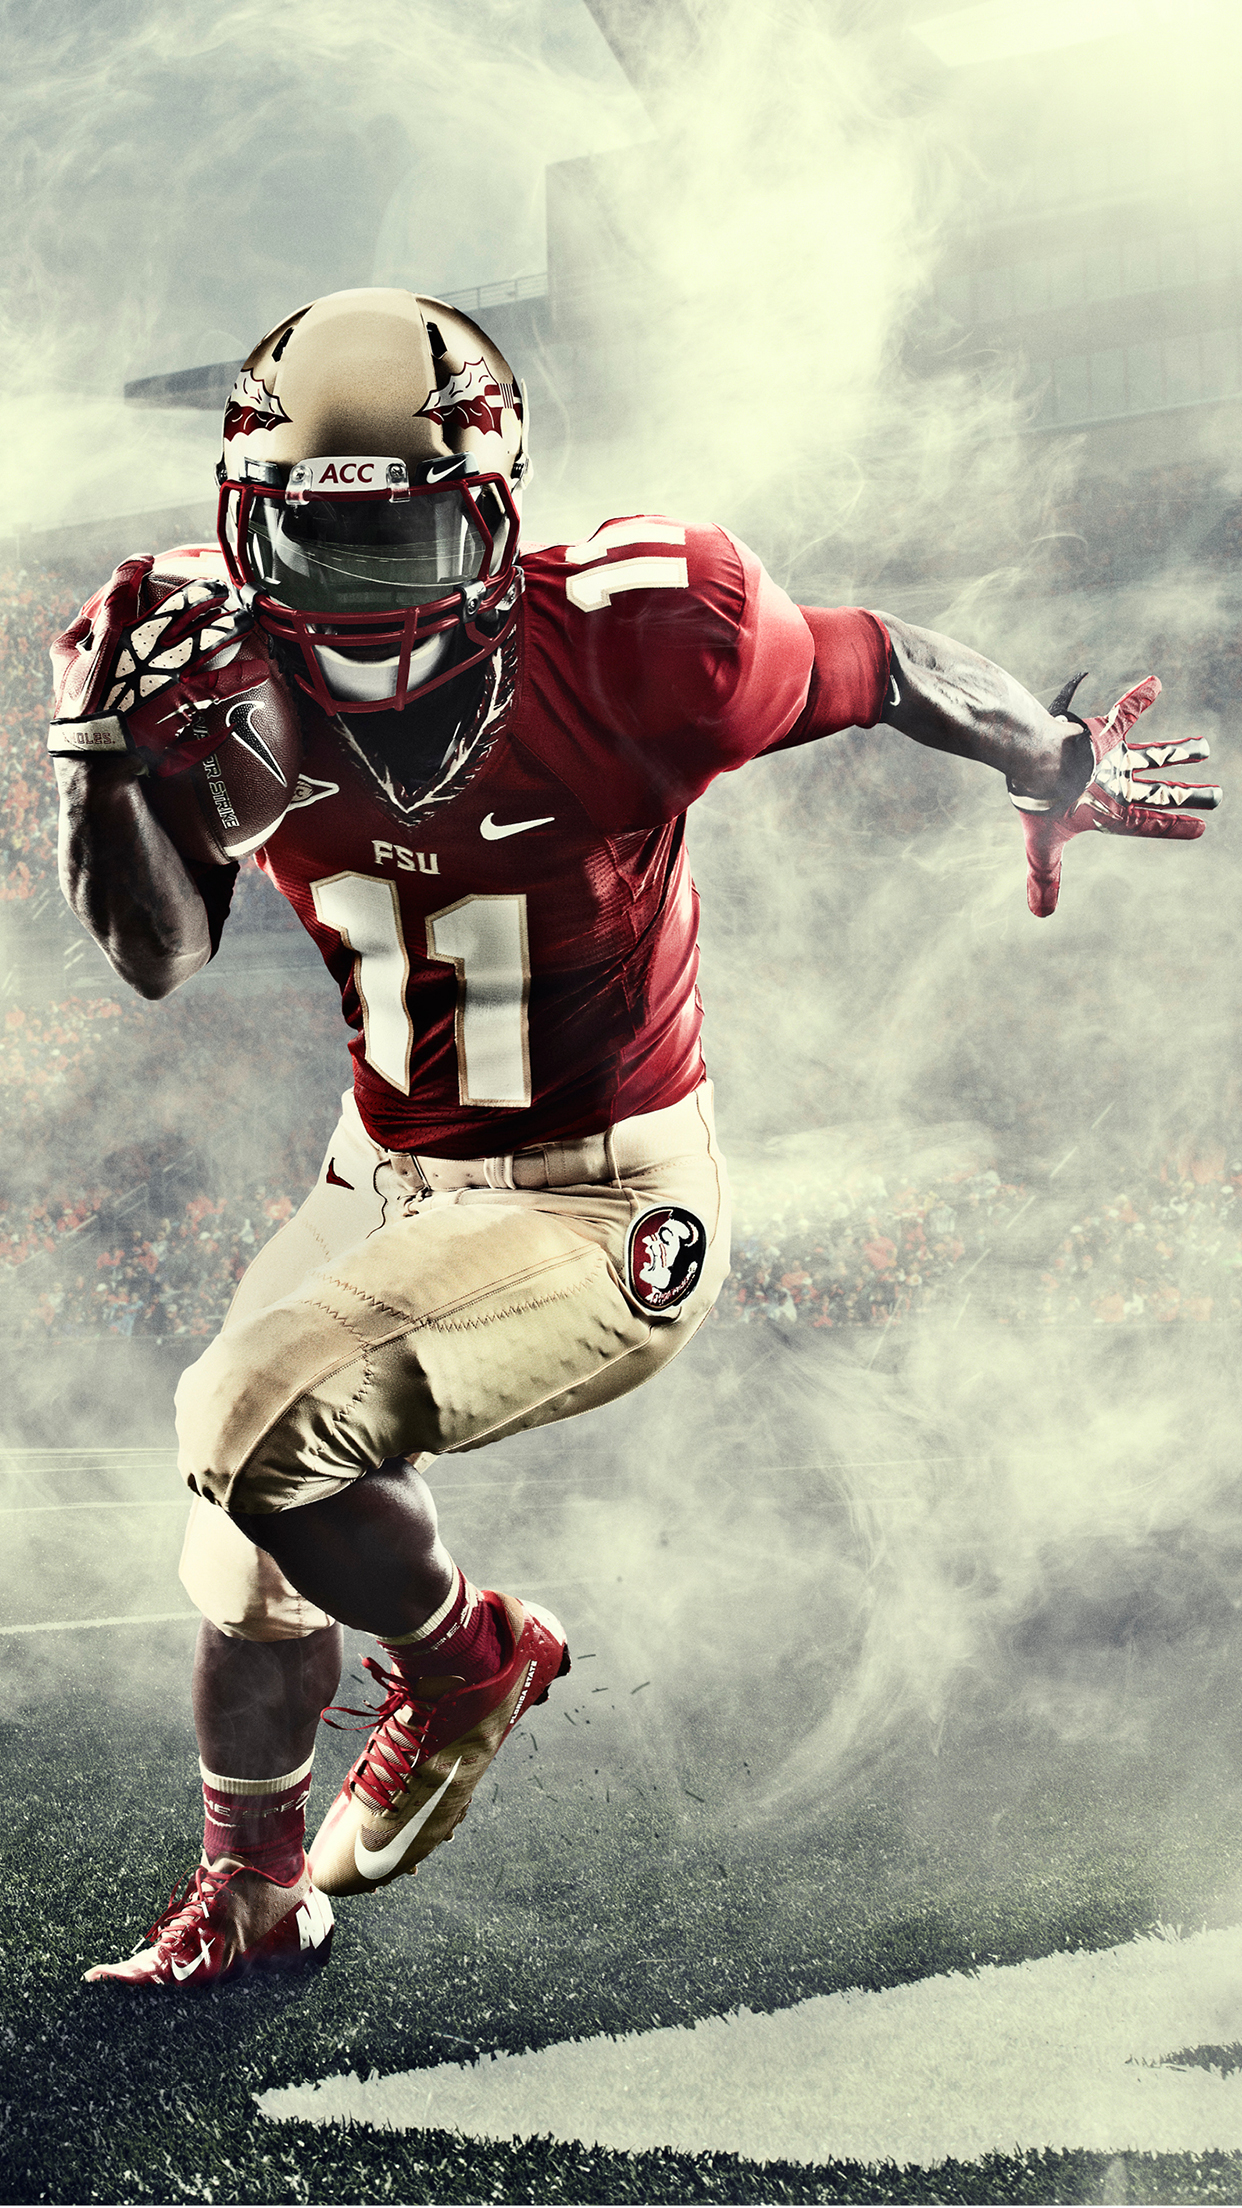 5225a8770 American Football Nike 3Wallpapers iPhone Parallax Les 3 Wallpapers  1242x2208